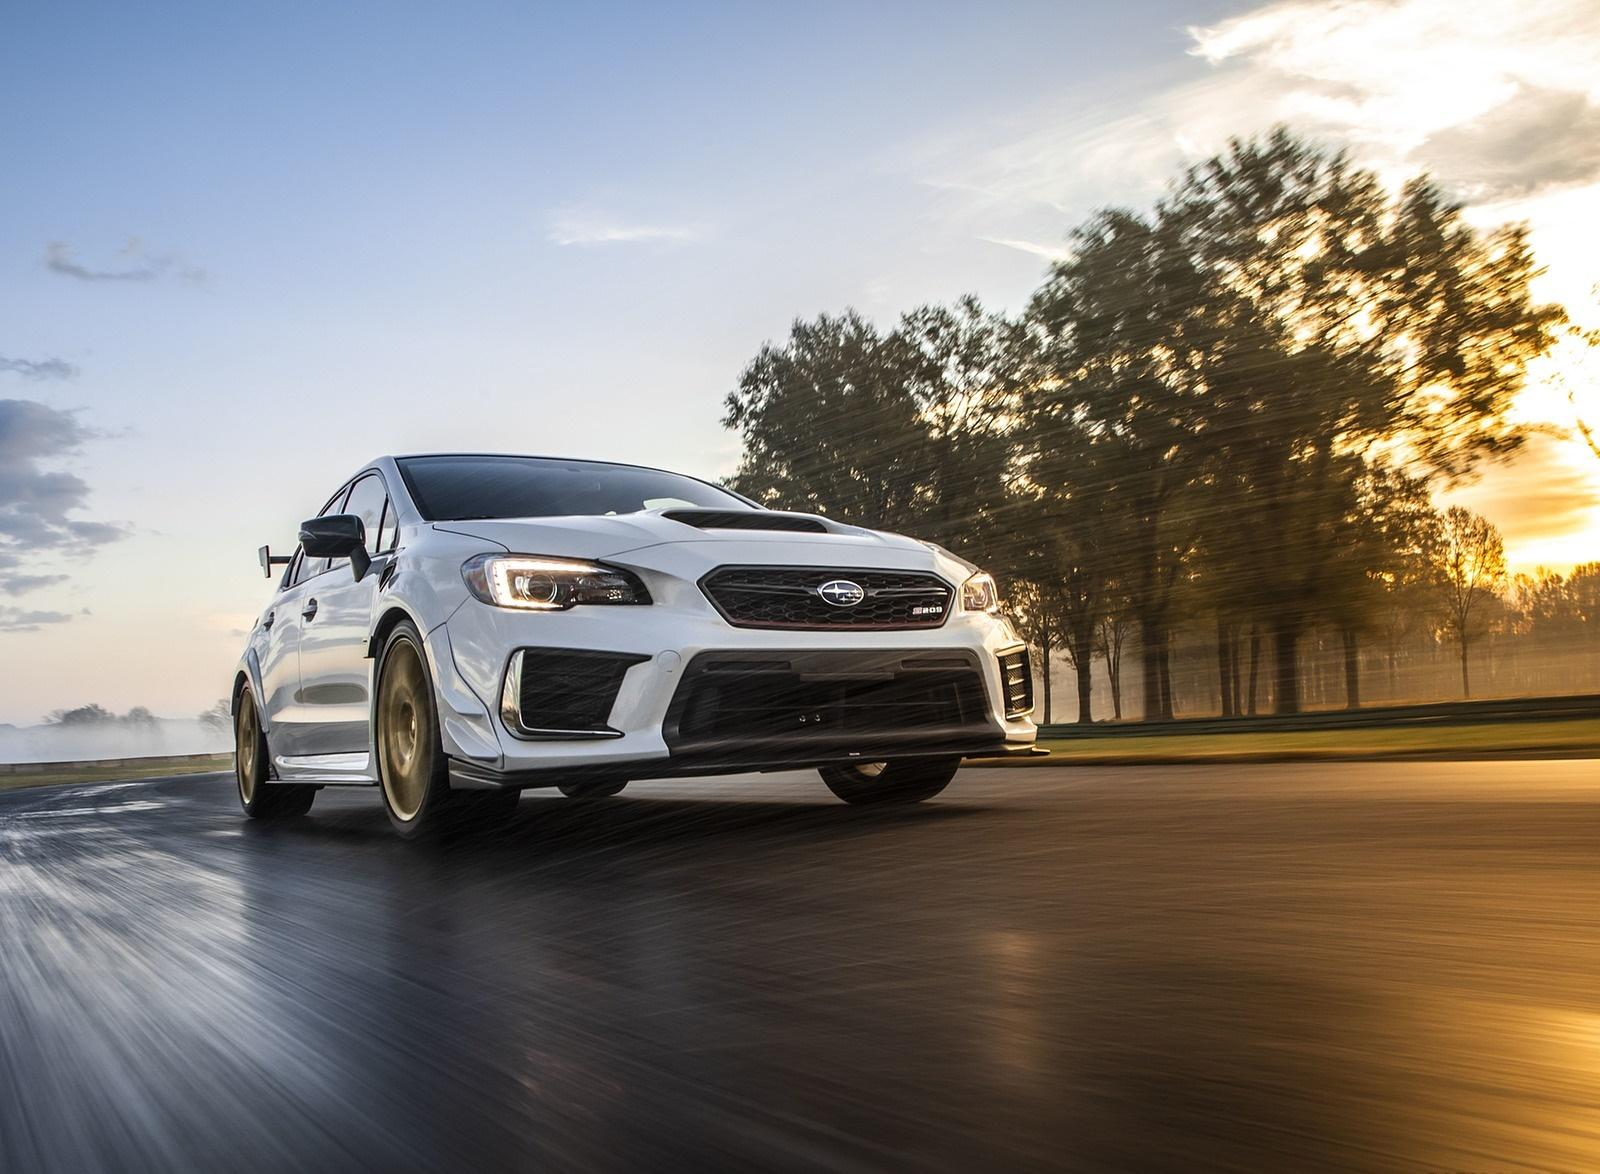 2019 Subaru WRX STI S209 Front Wallpaper (17) - HD Wallpapers